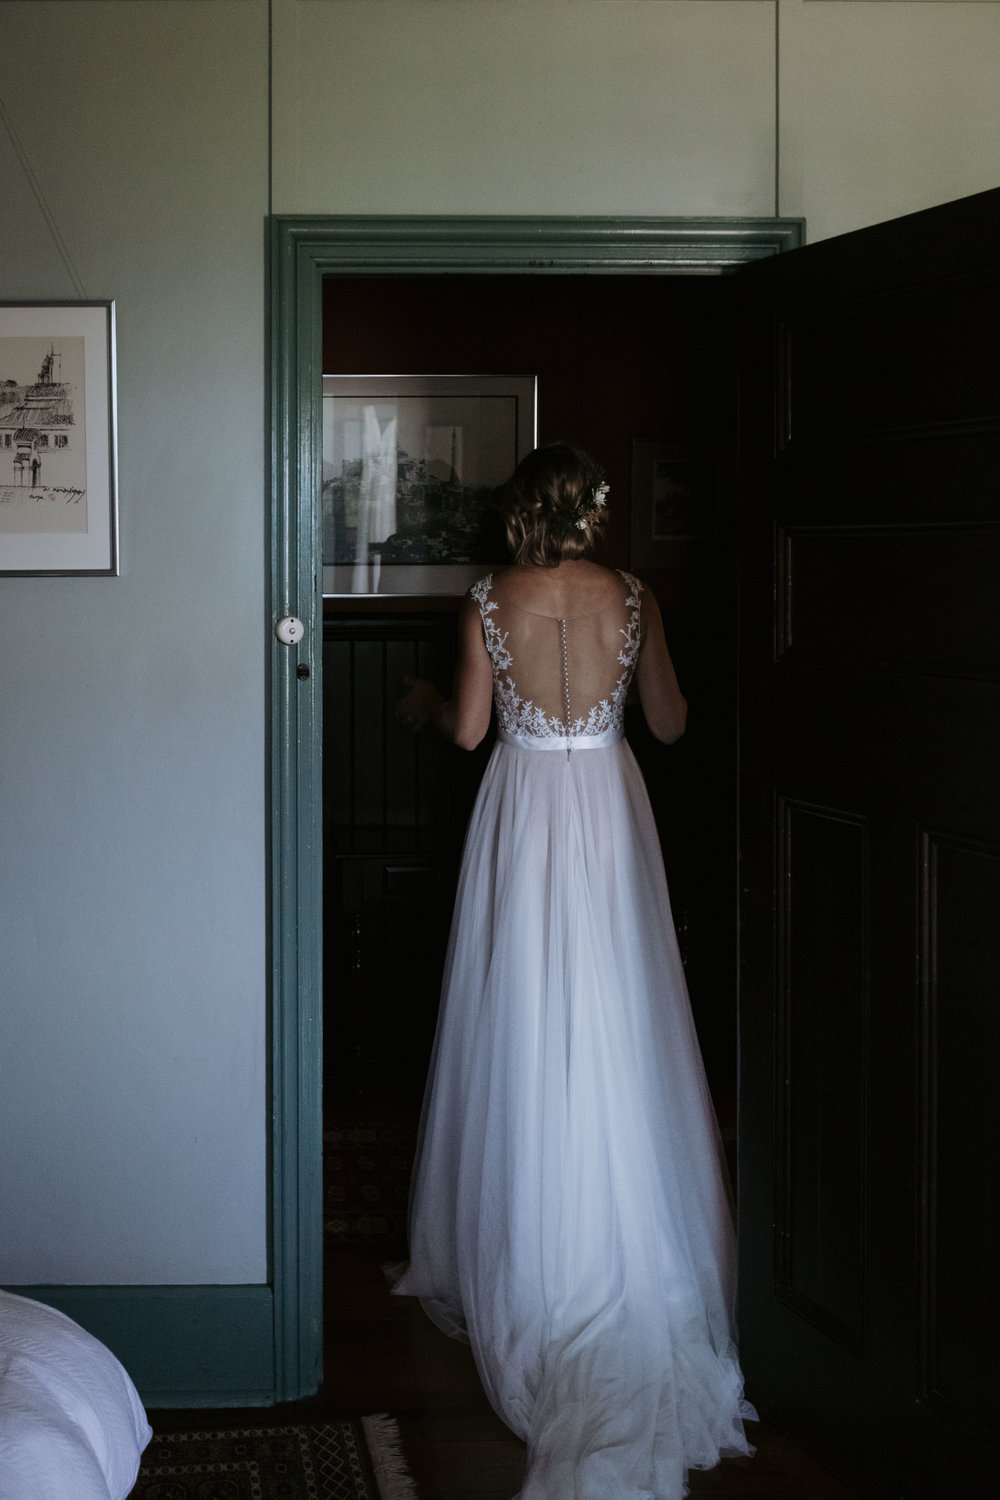 Bride in dress in doorway photo. Natural wedding photography